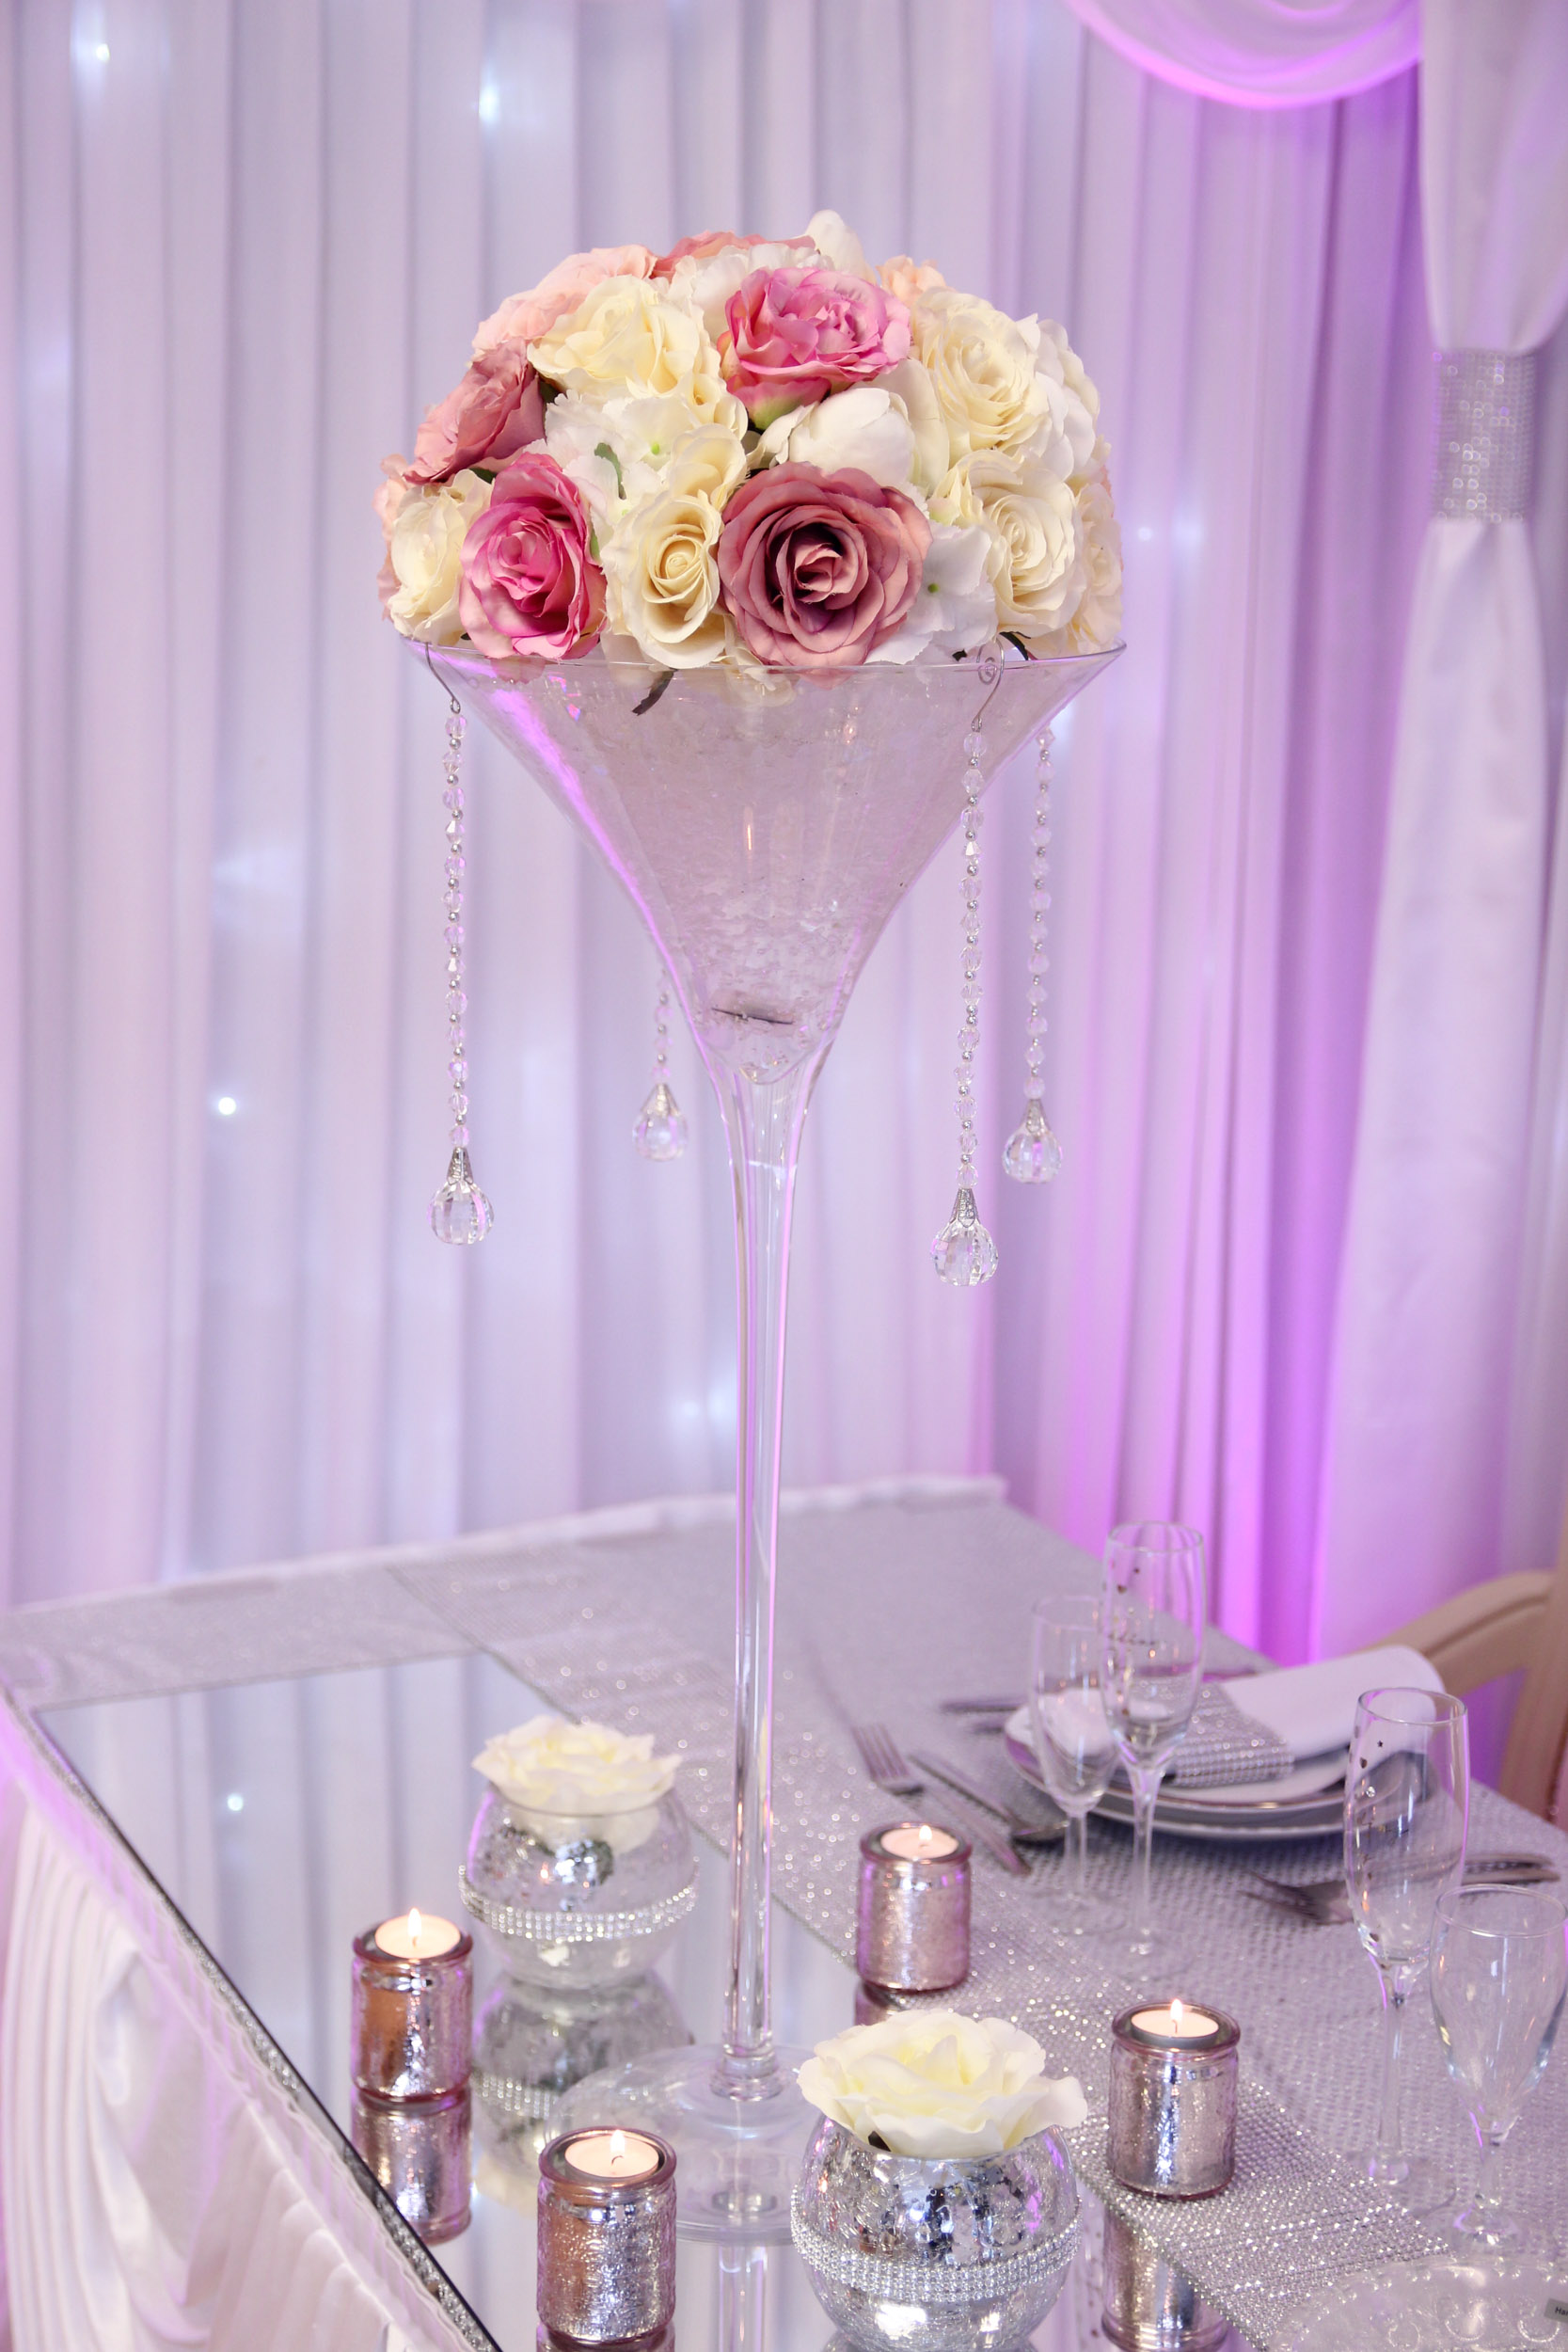 Martini Vase With Rose Dome Beyond Expectations Weddings